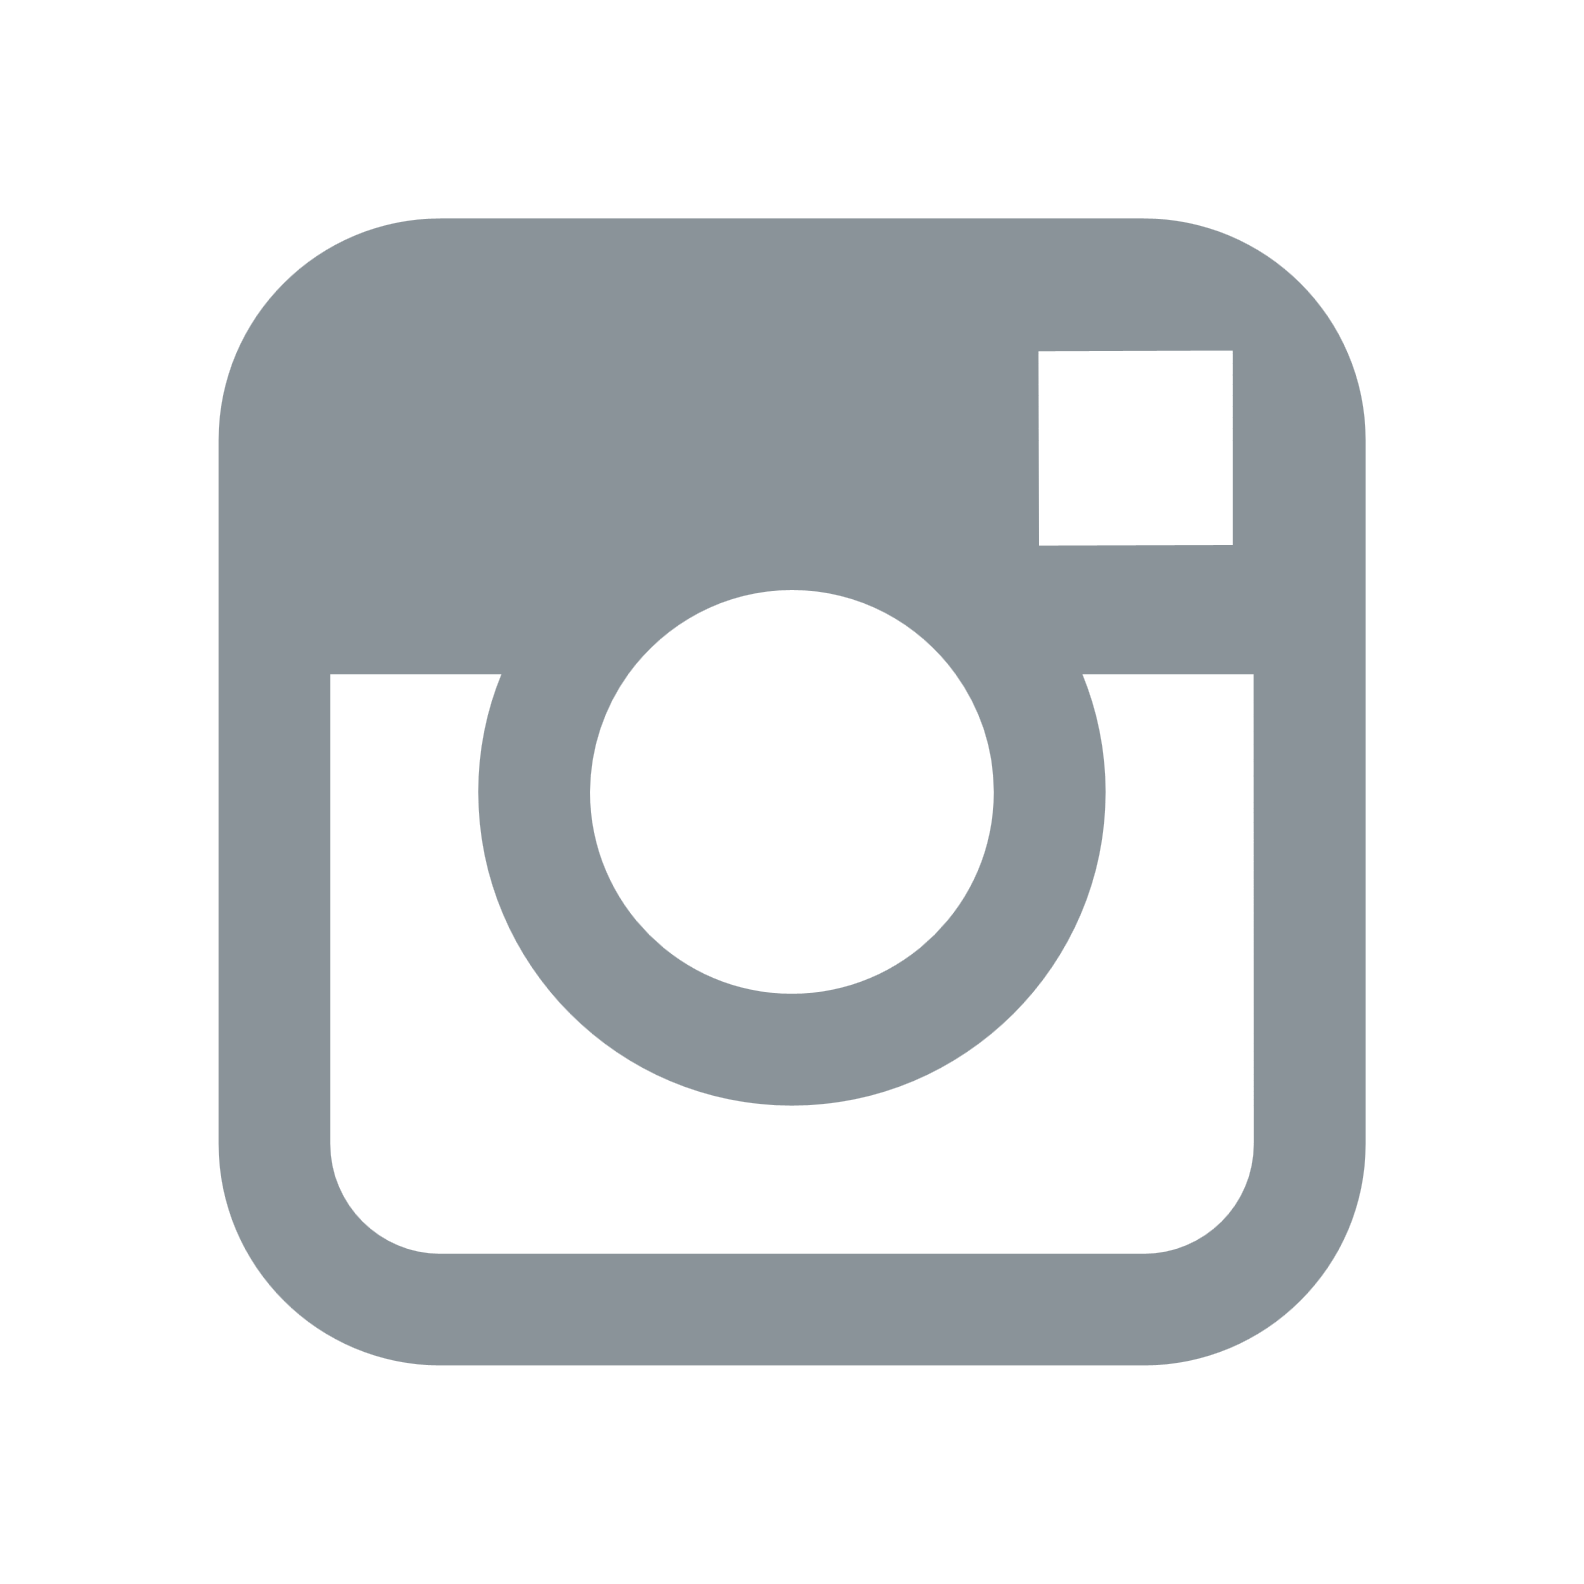 png free stock Instagram clipart. Icn free on dumielauxepices